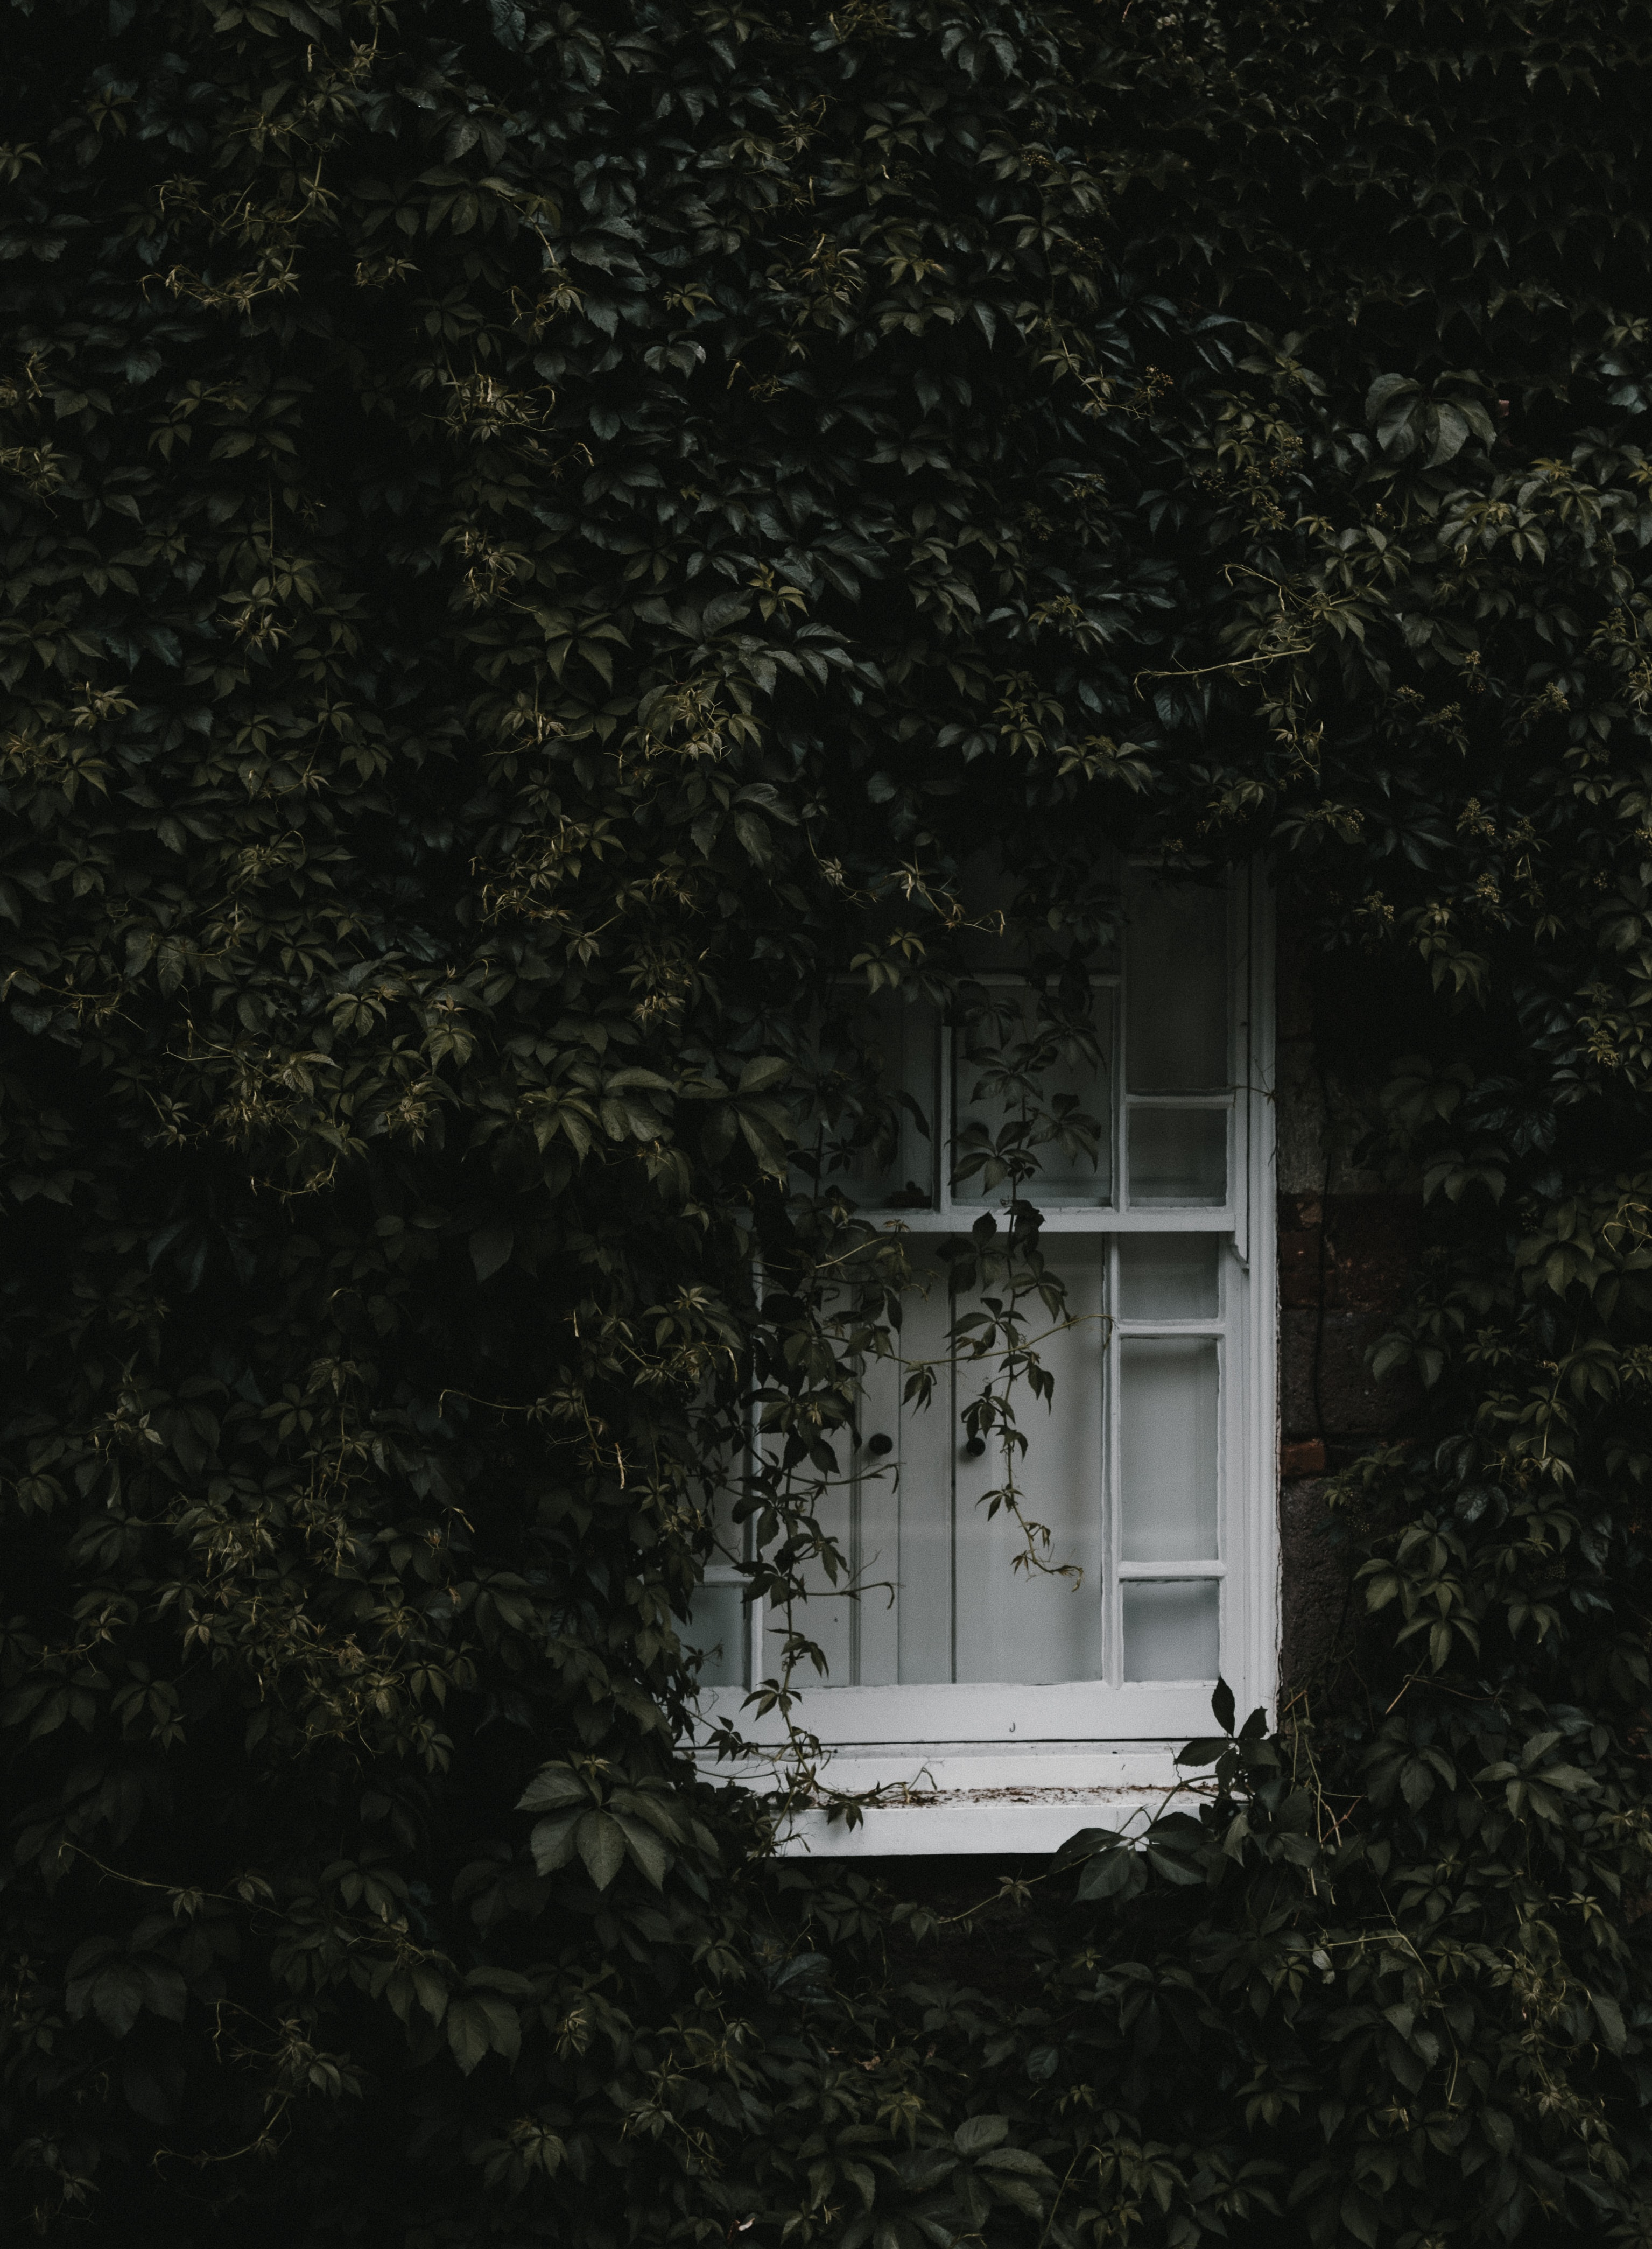 white wooden window surrounded by green vines